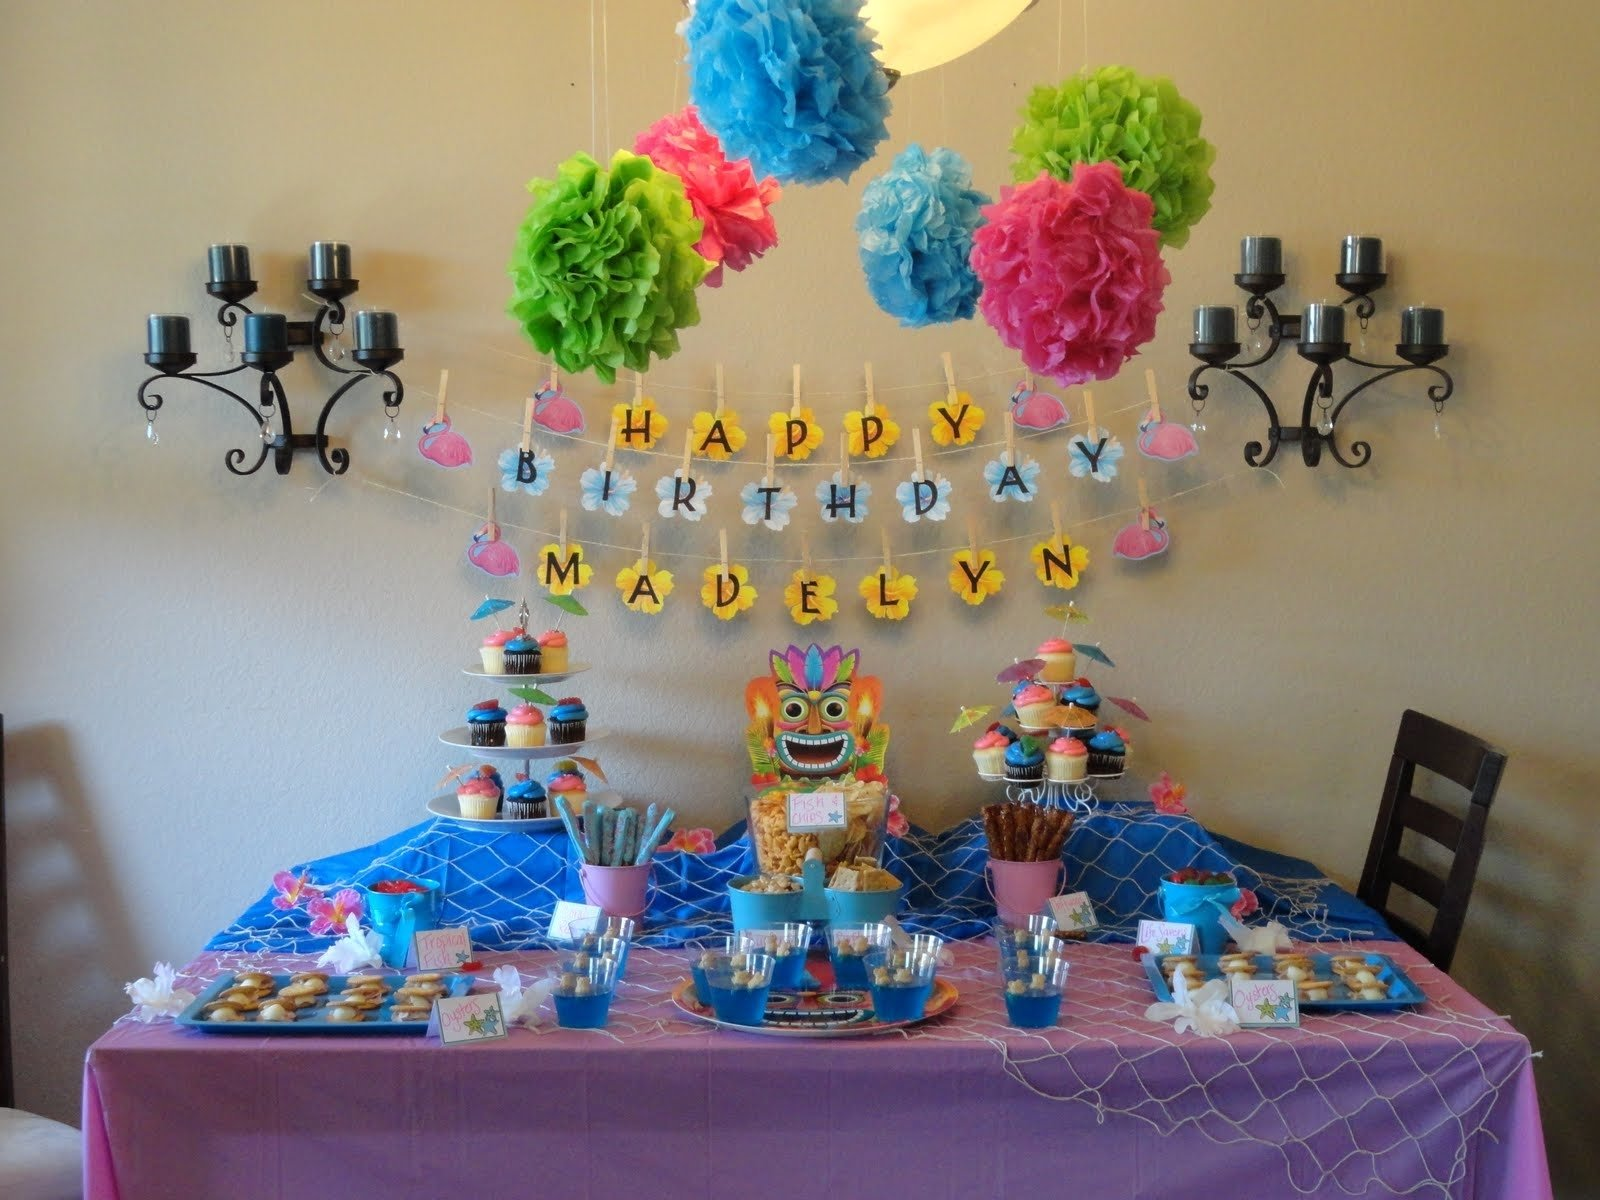 10 Most Recommended Birthday Party Ideas For 2 Year Old Boy Themes And 4